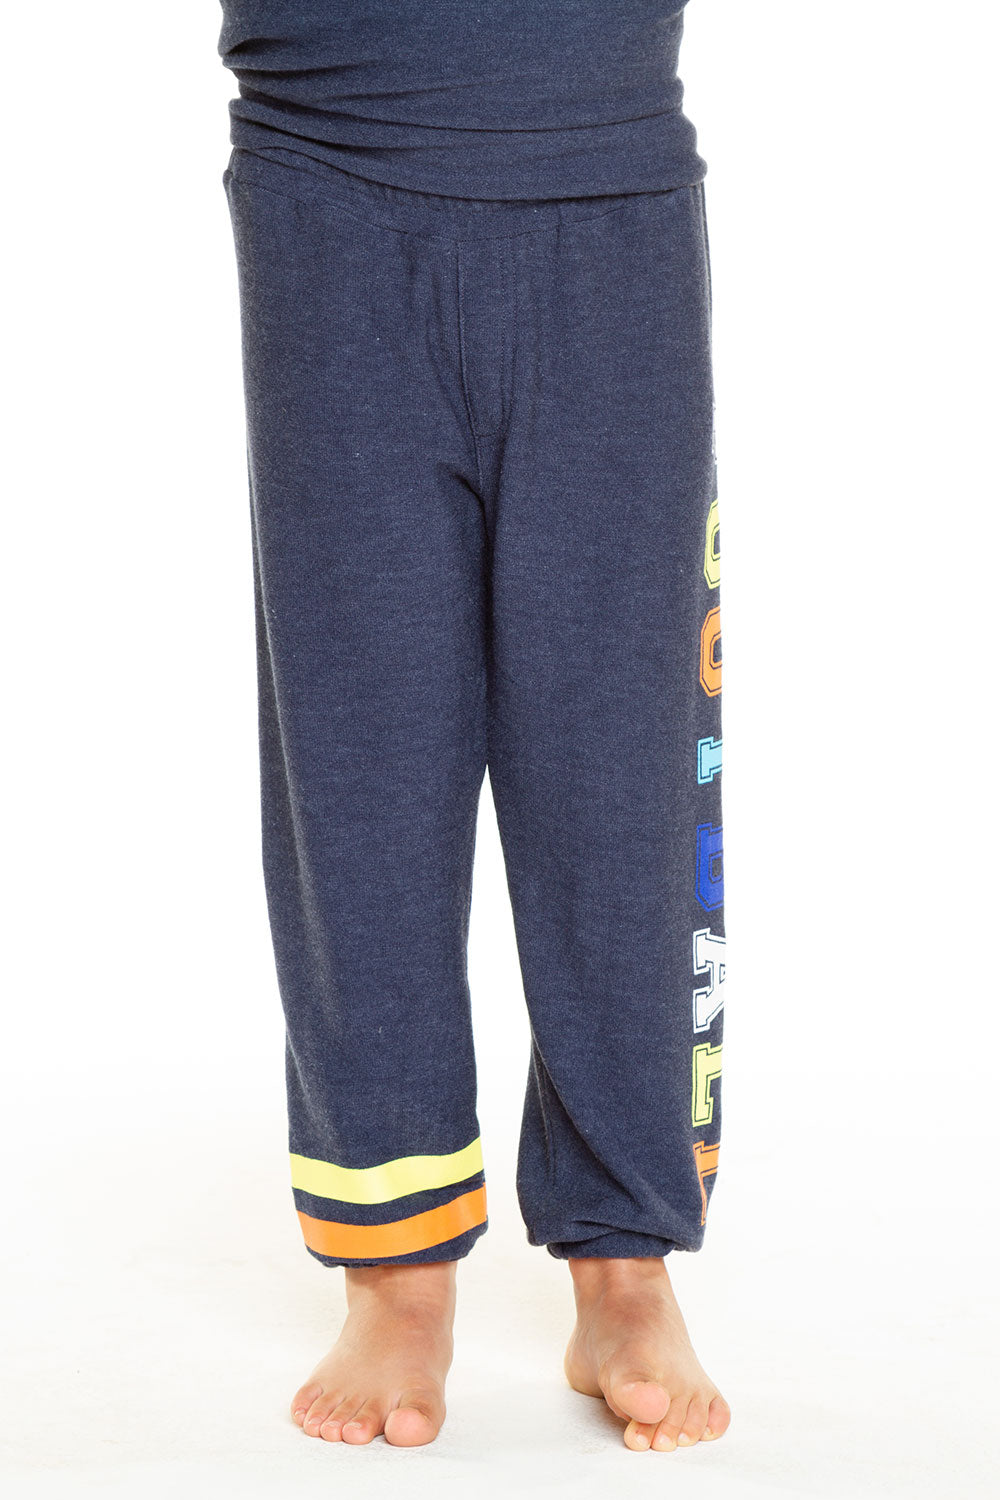 Game Day Pants BOYS chaserbrand4.myshopify.com